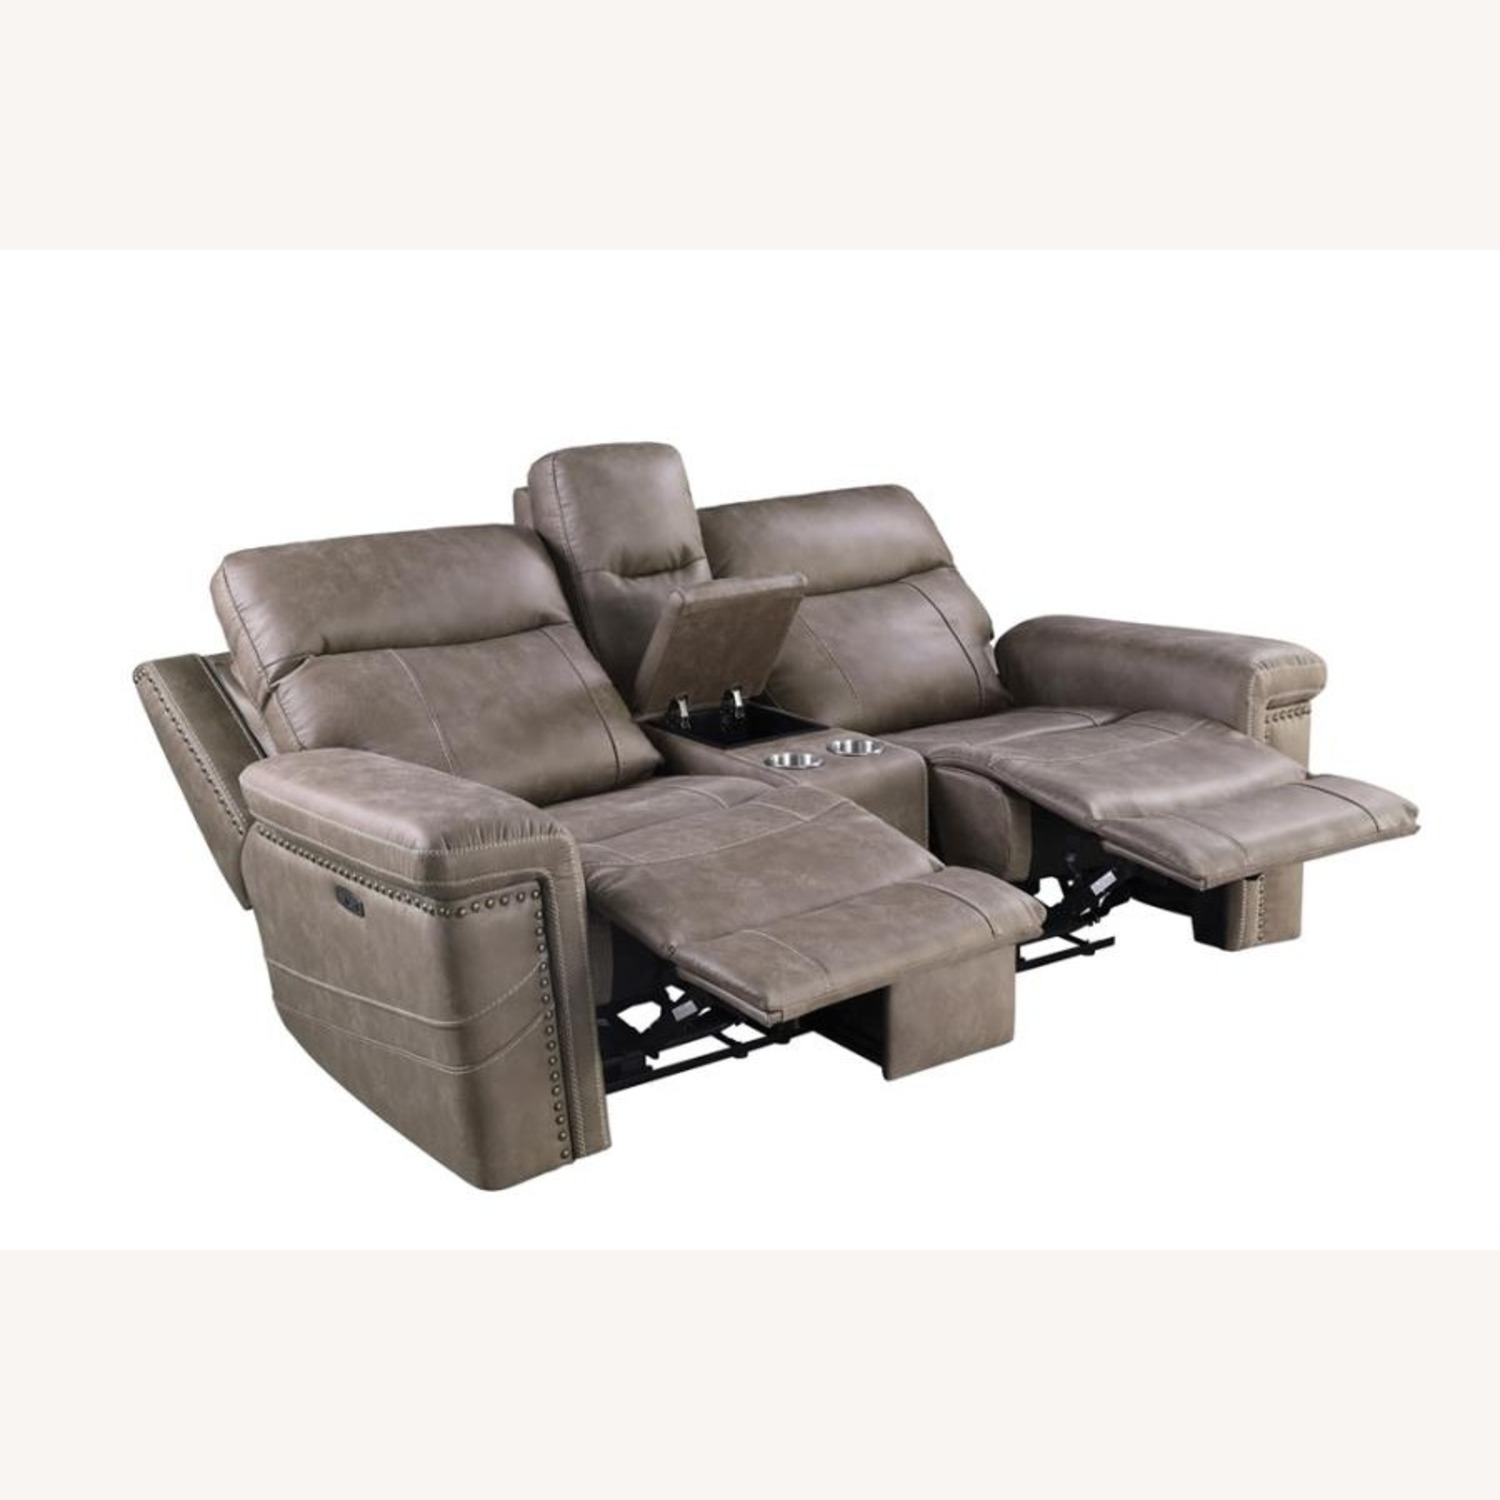 Power Loveseat Recliner In Taupe Upholstery - image-10